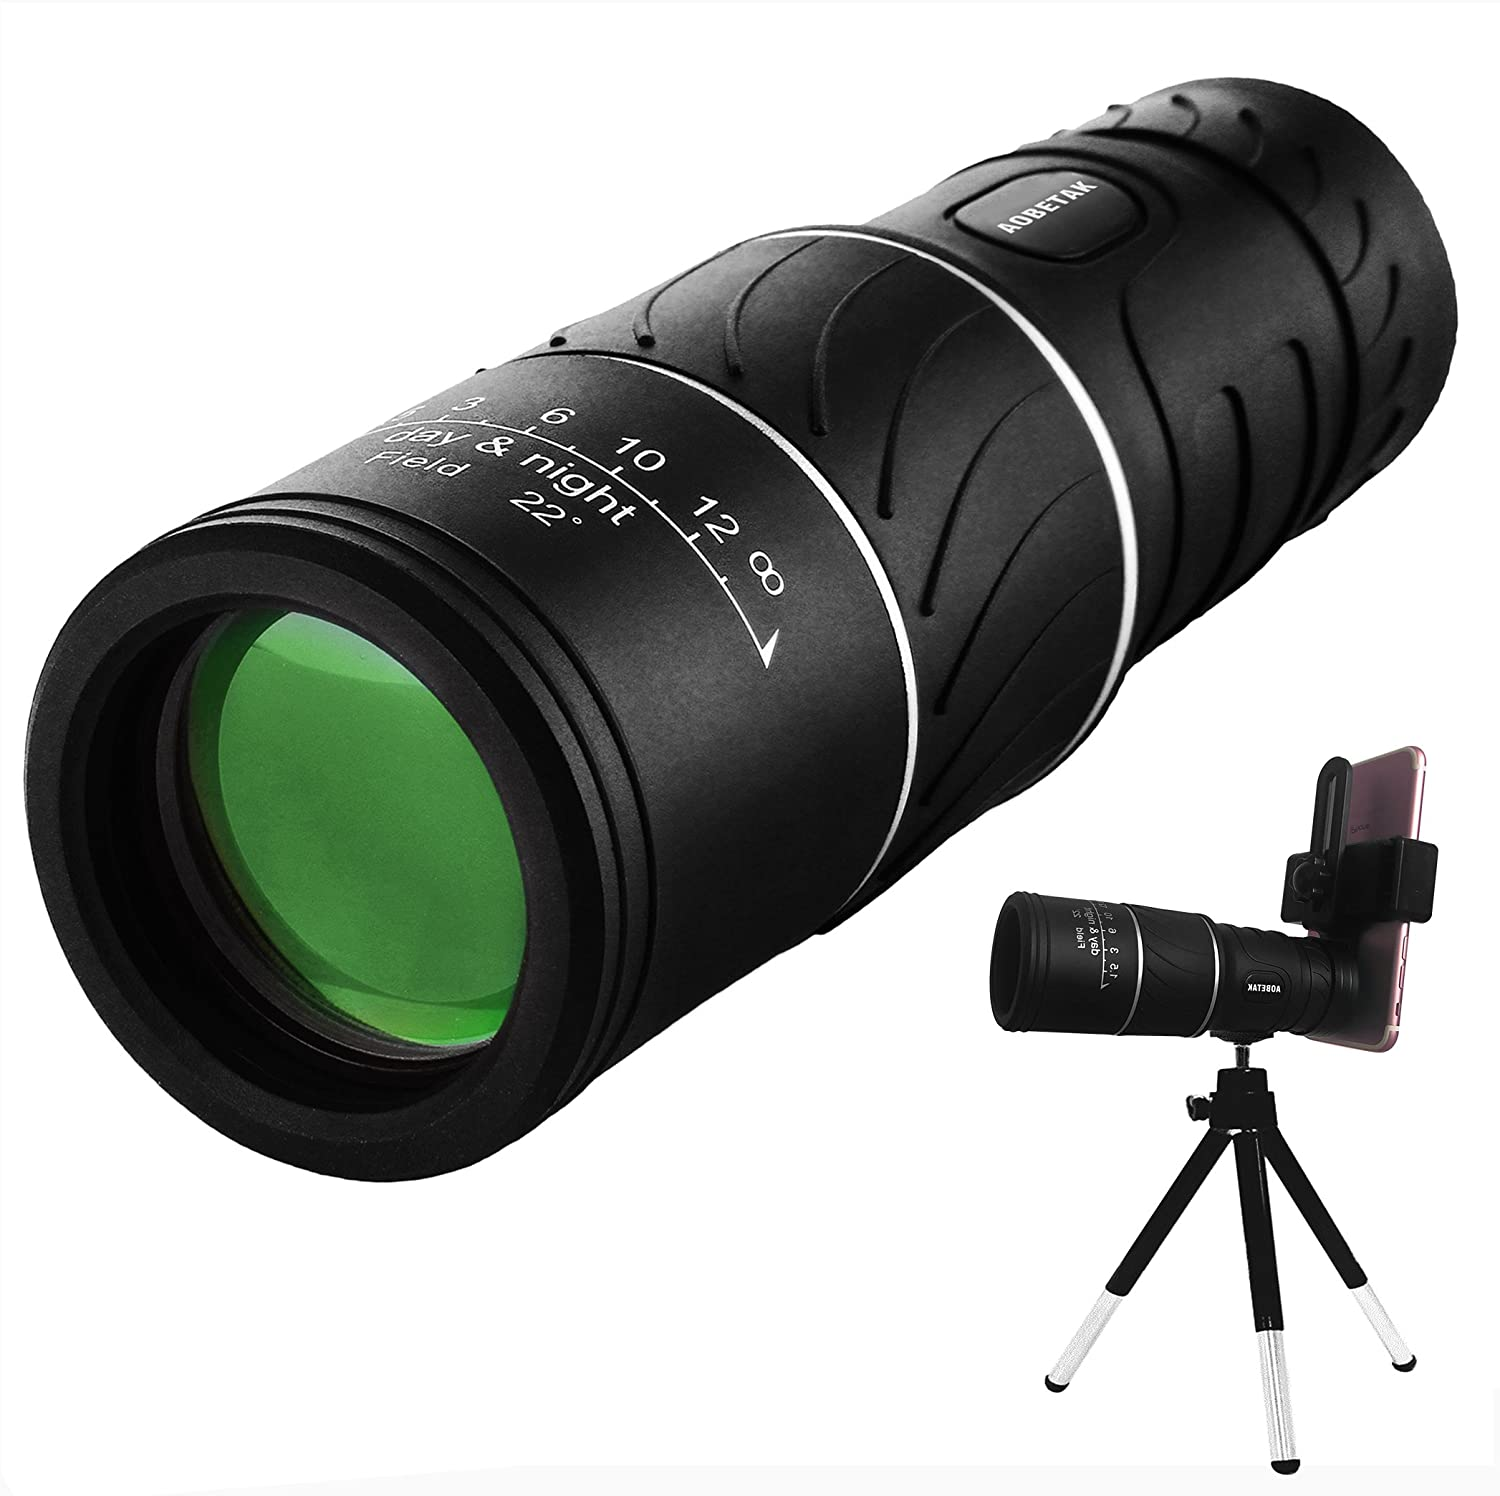 16x52 Monocular Telescope,AOBETAK High Power Spotting Scopes Equipped With Phone Adaptor and Tripod, Low Light Night Vision Binoculars or Adults Kids Bird Watching Traveling, Outdoors 98m/ 8000m